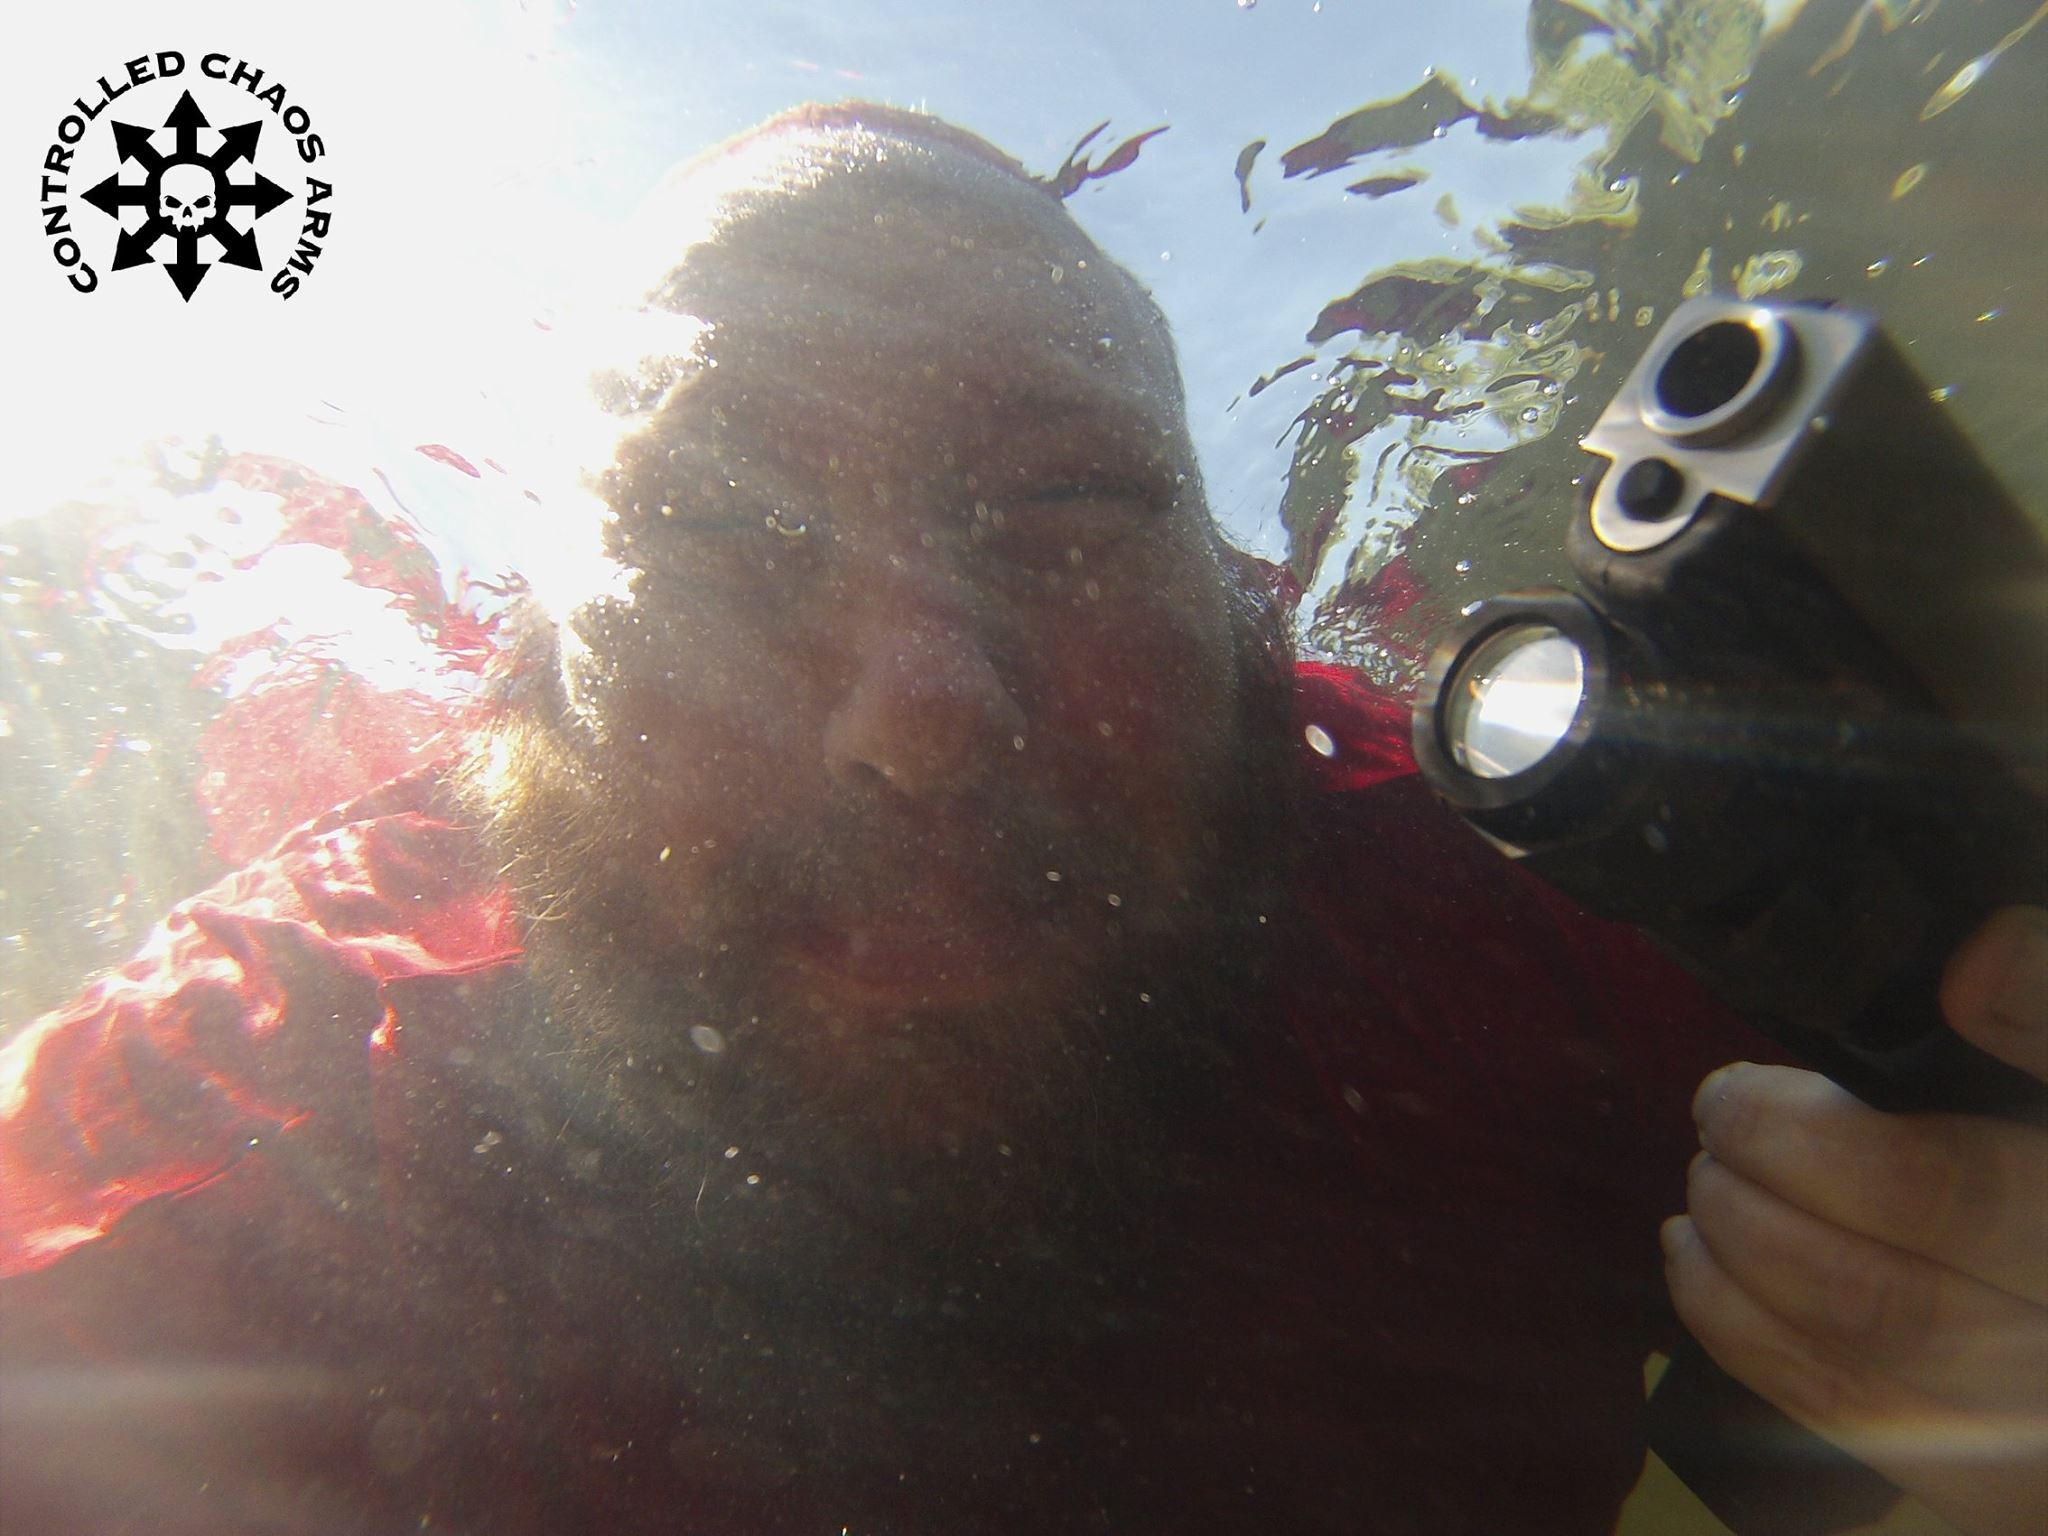 Yes, Glocks shoot underwater.  Even when chambered in 50GI.